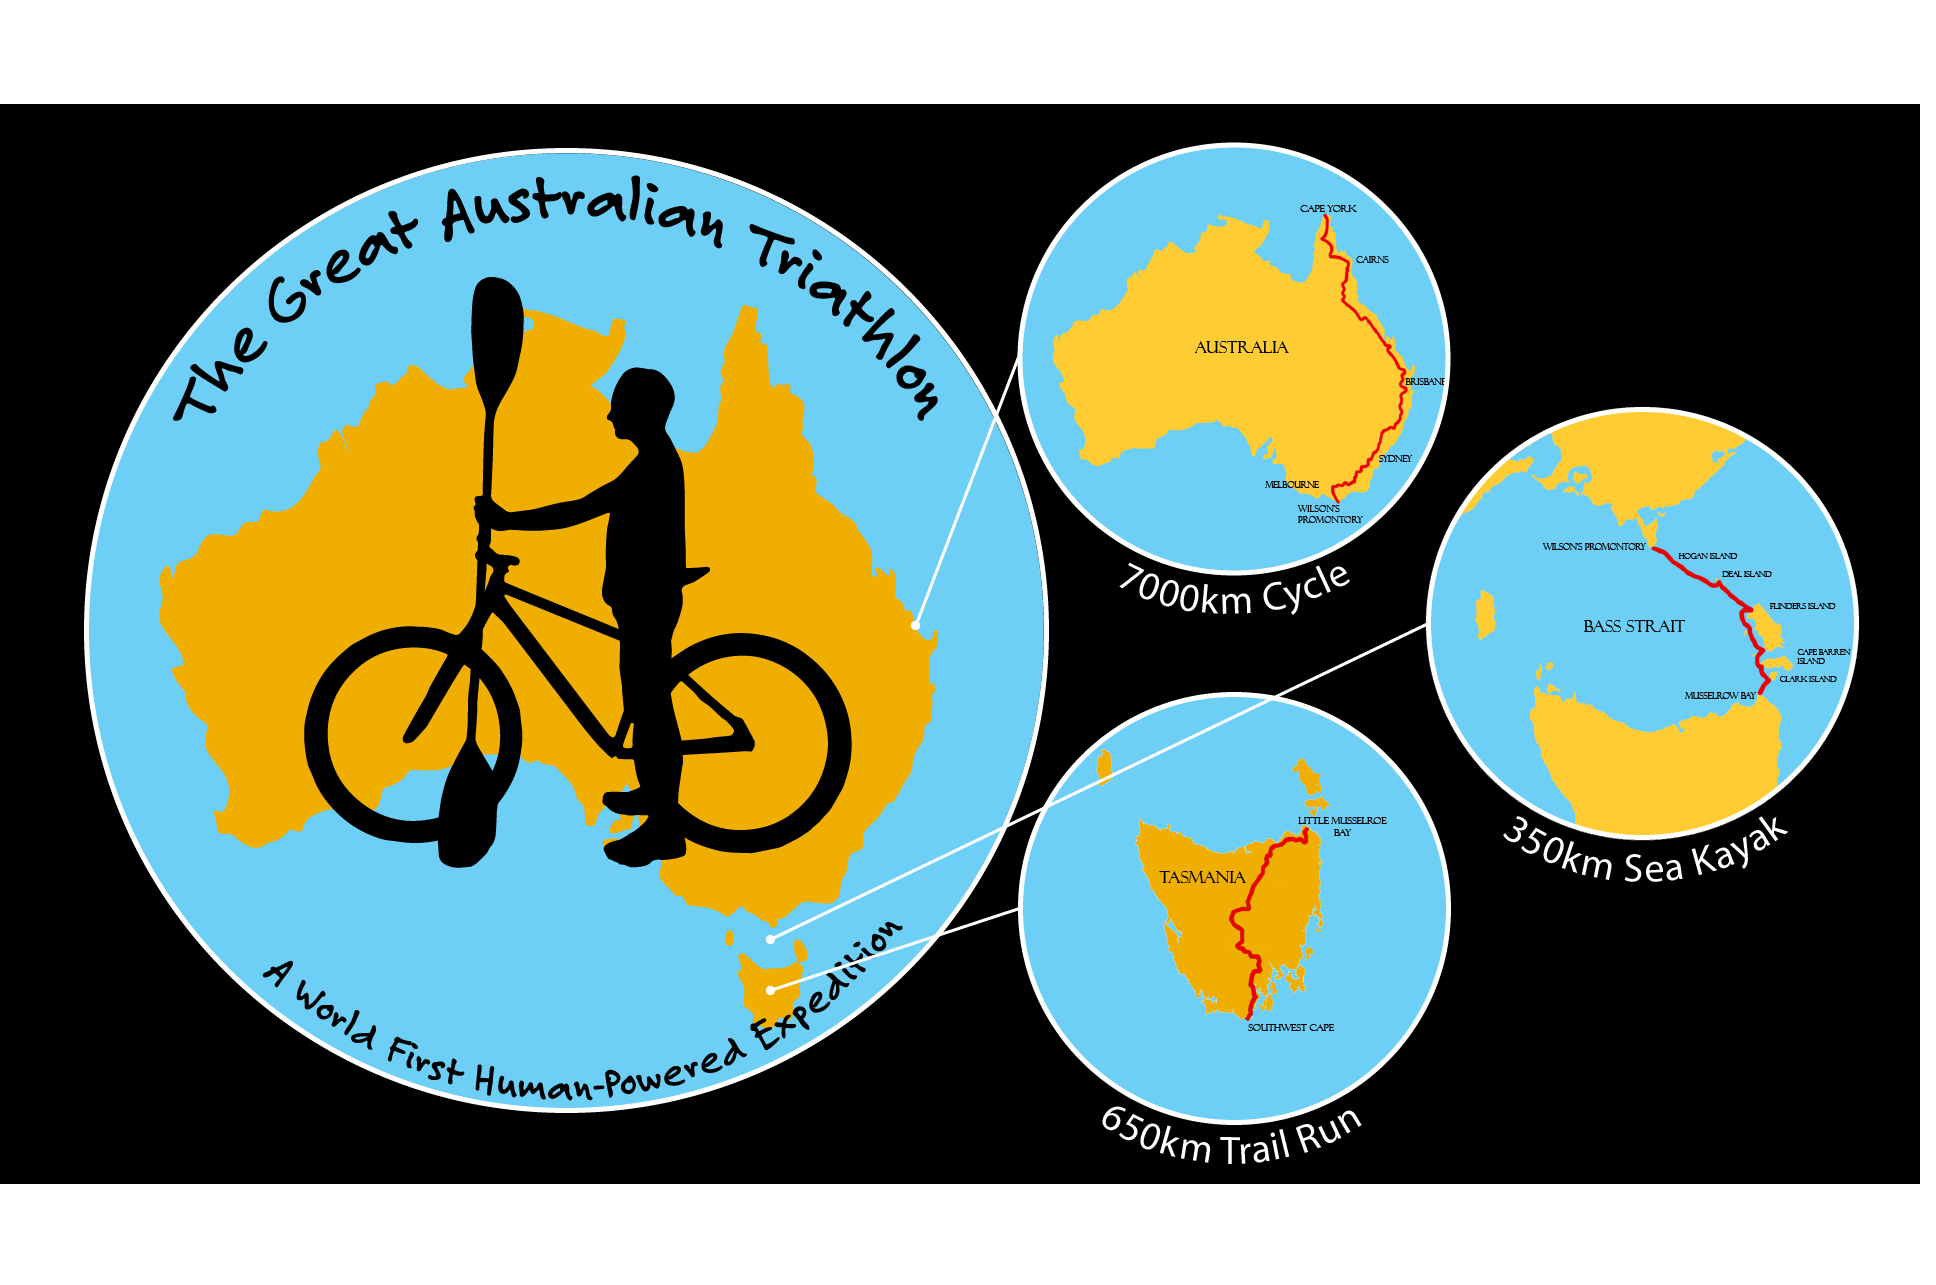 The Great Australian Triathlon Route